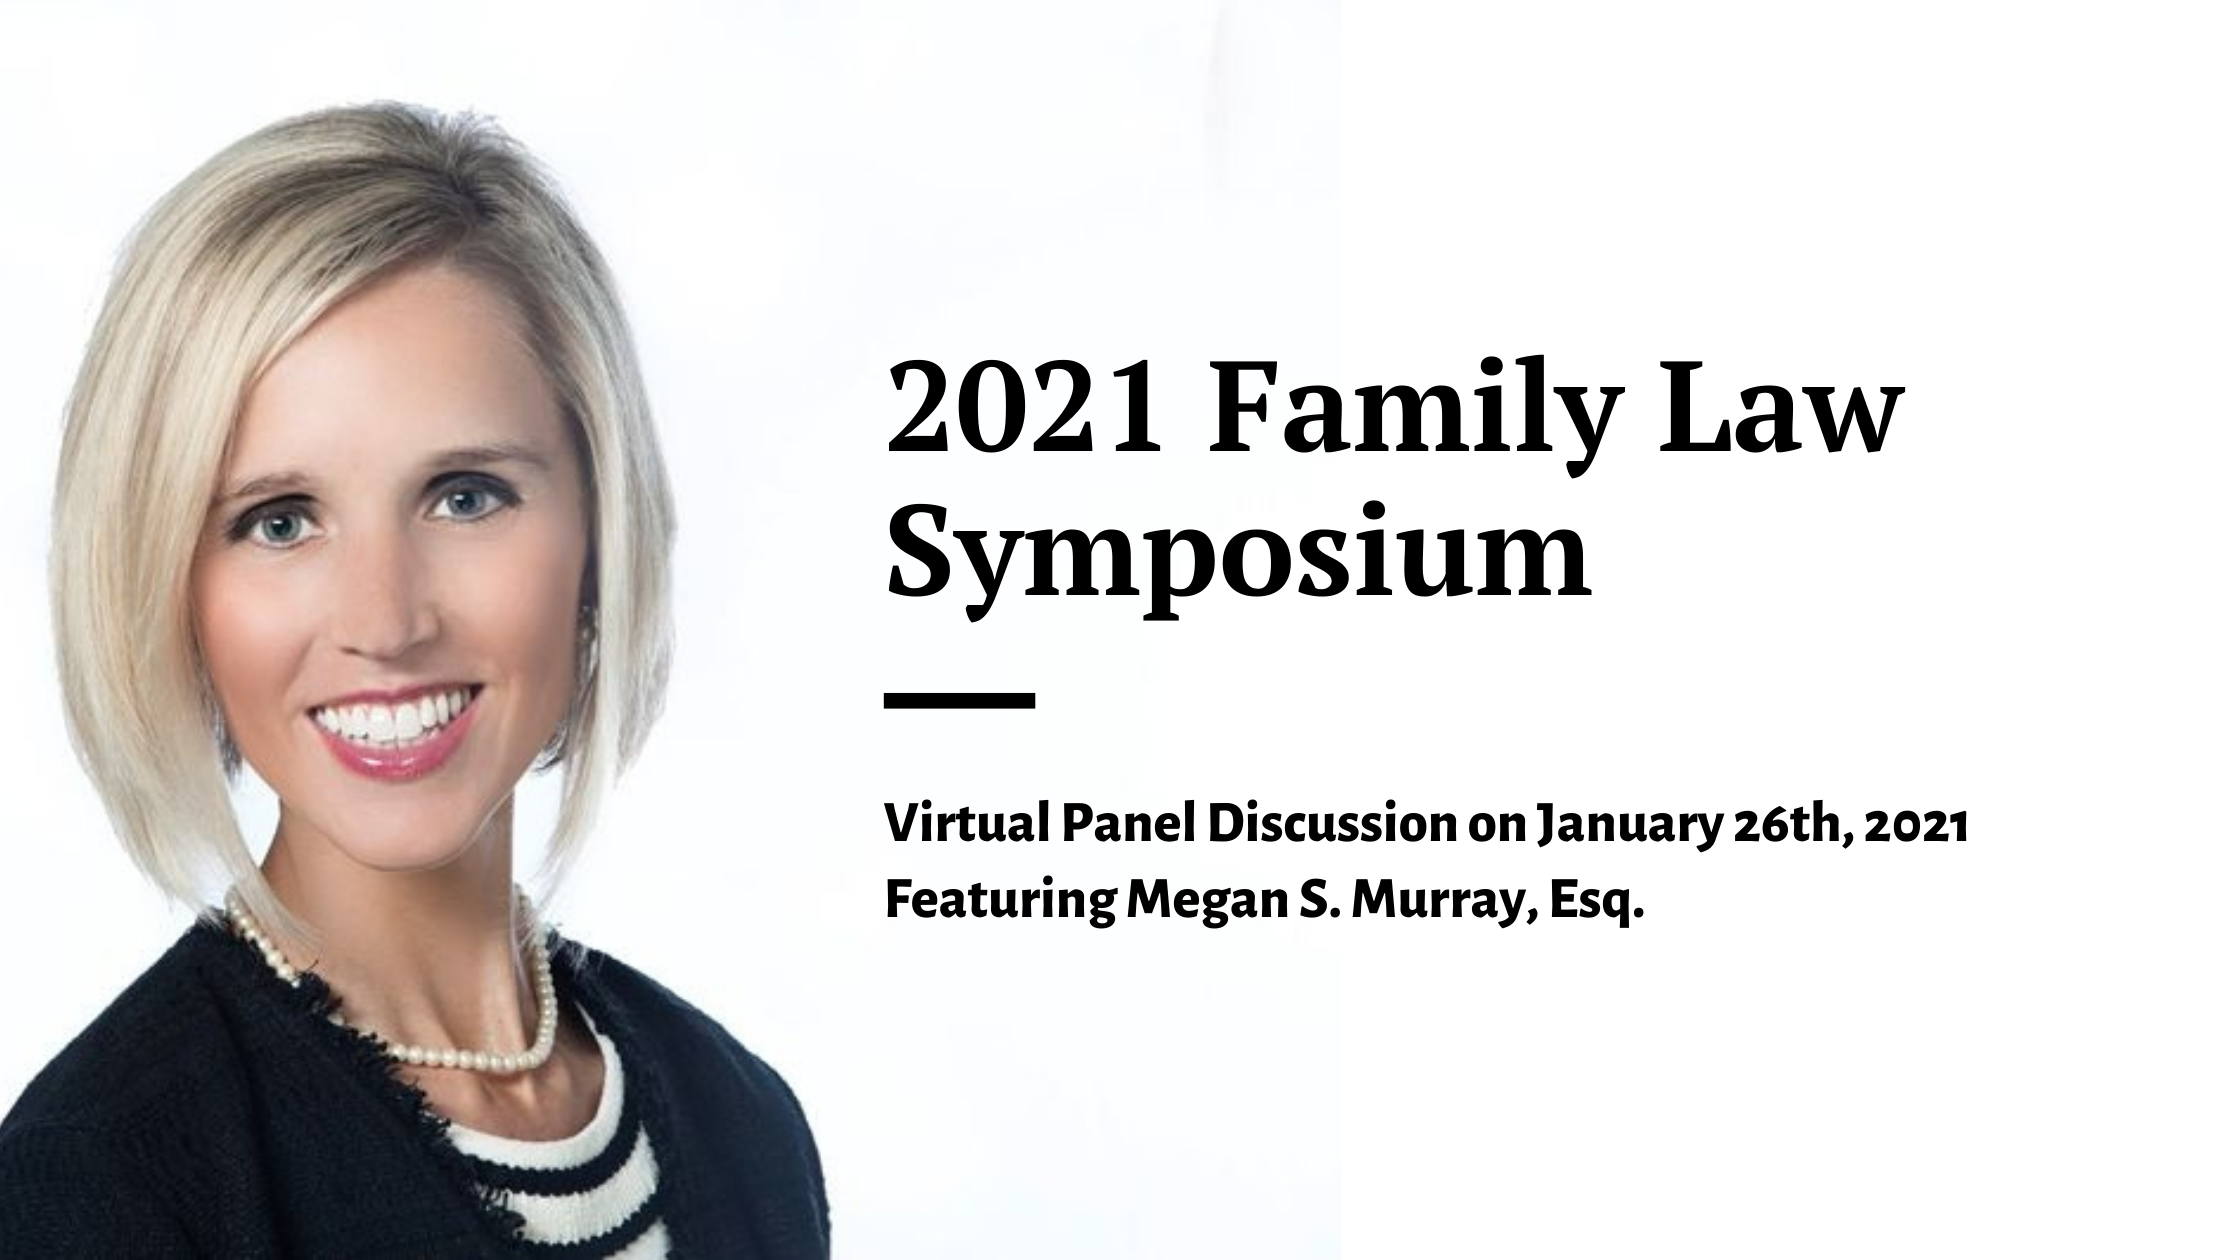 2021 Family Law Symposium panel discussion moderated by Megan S. Murray, Esq.